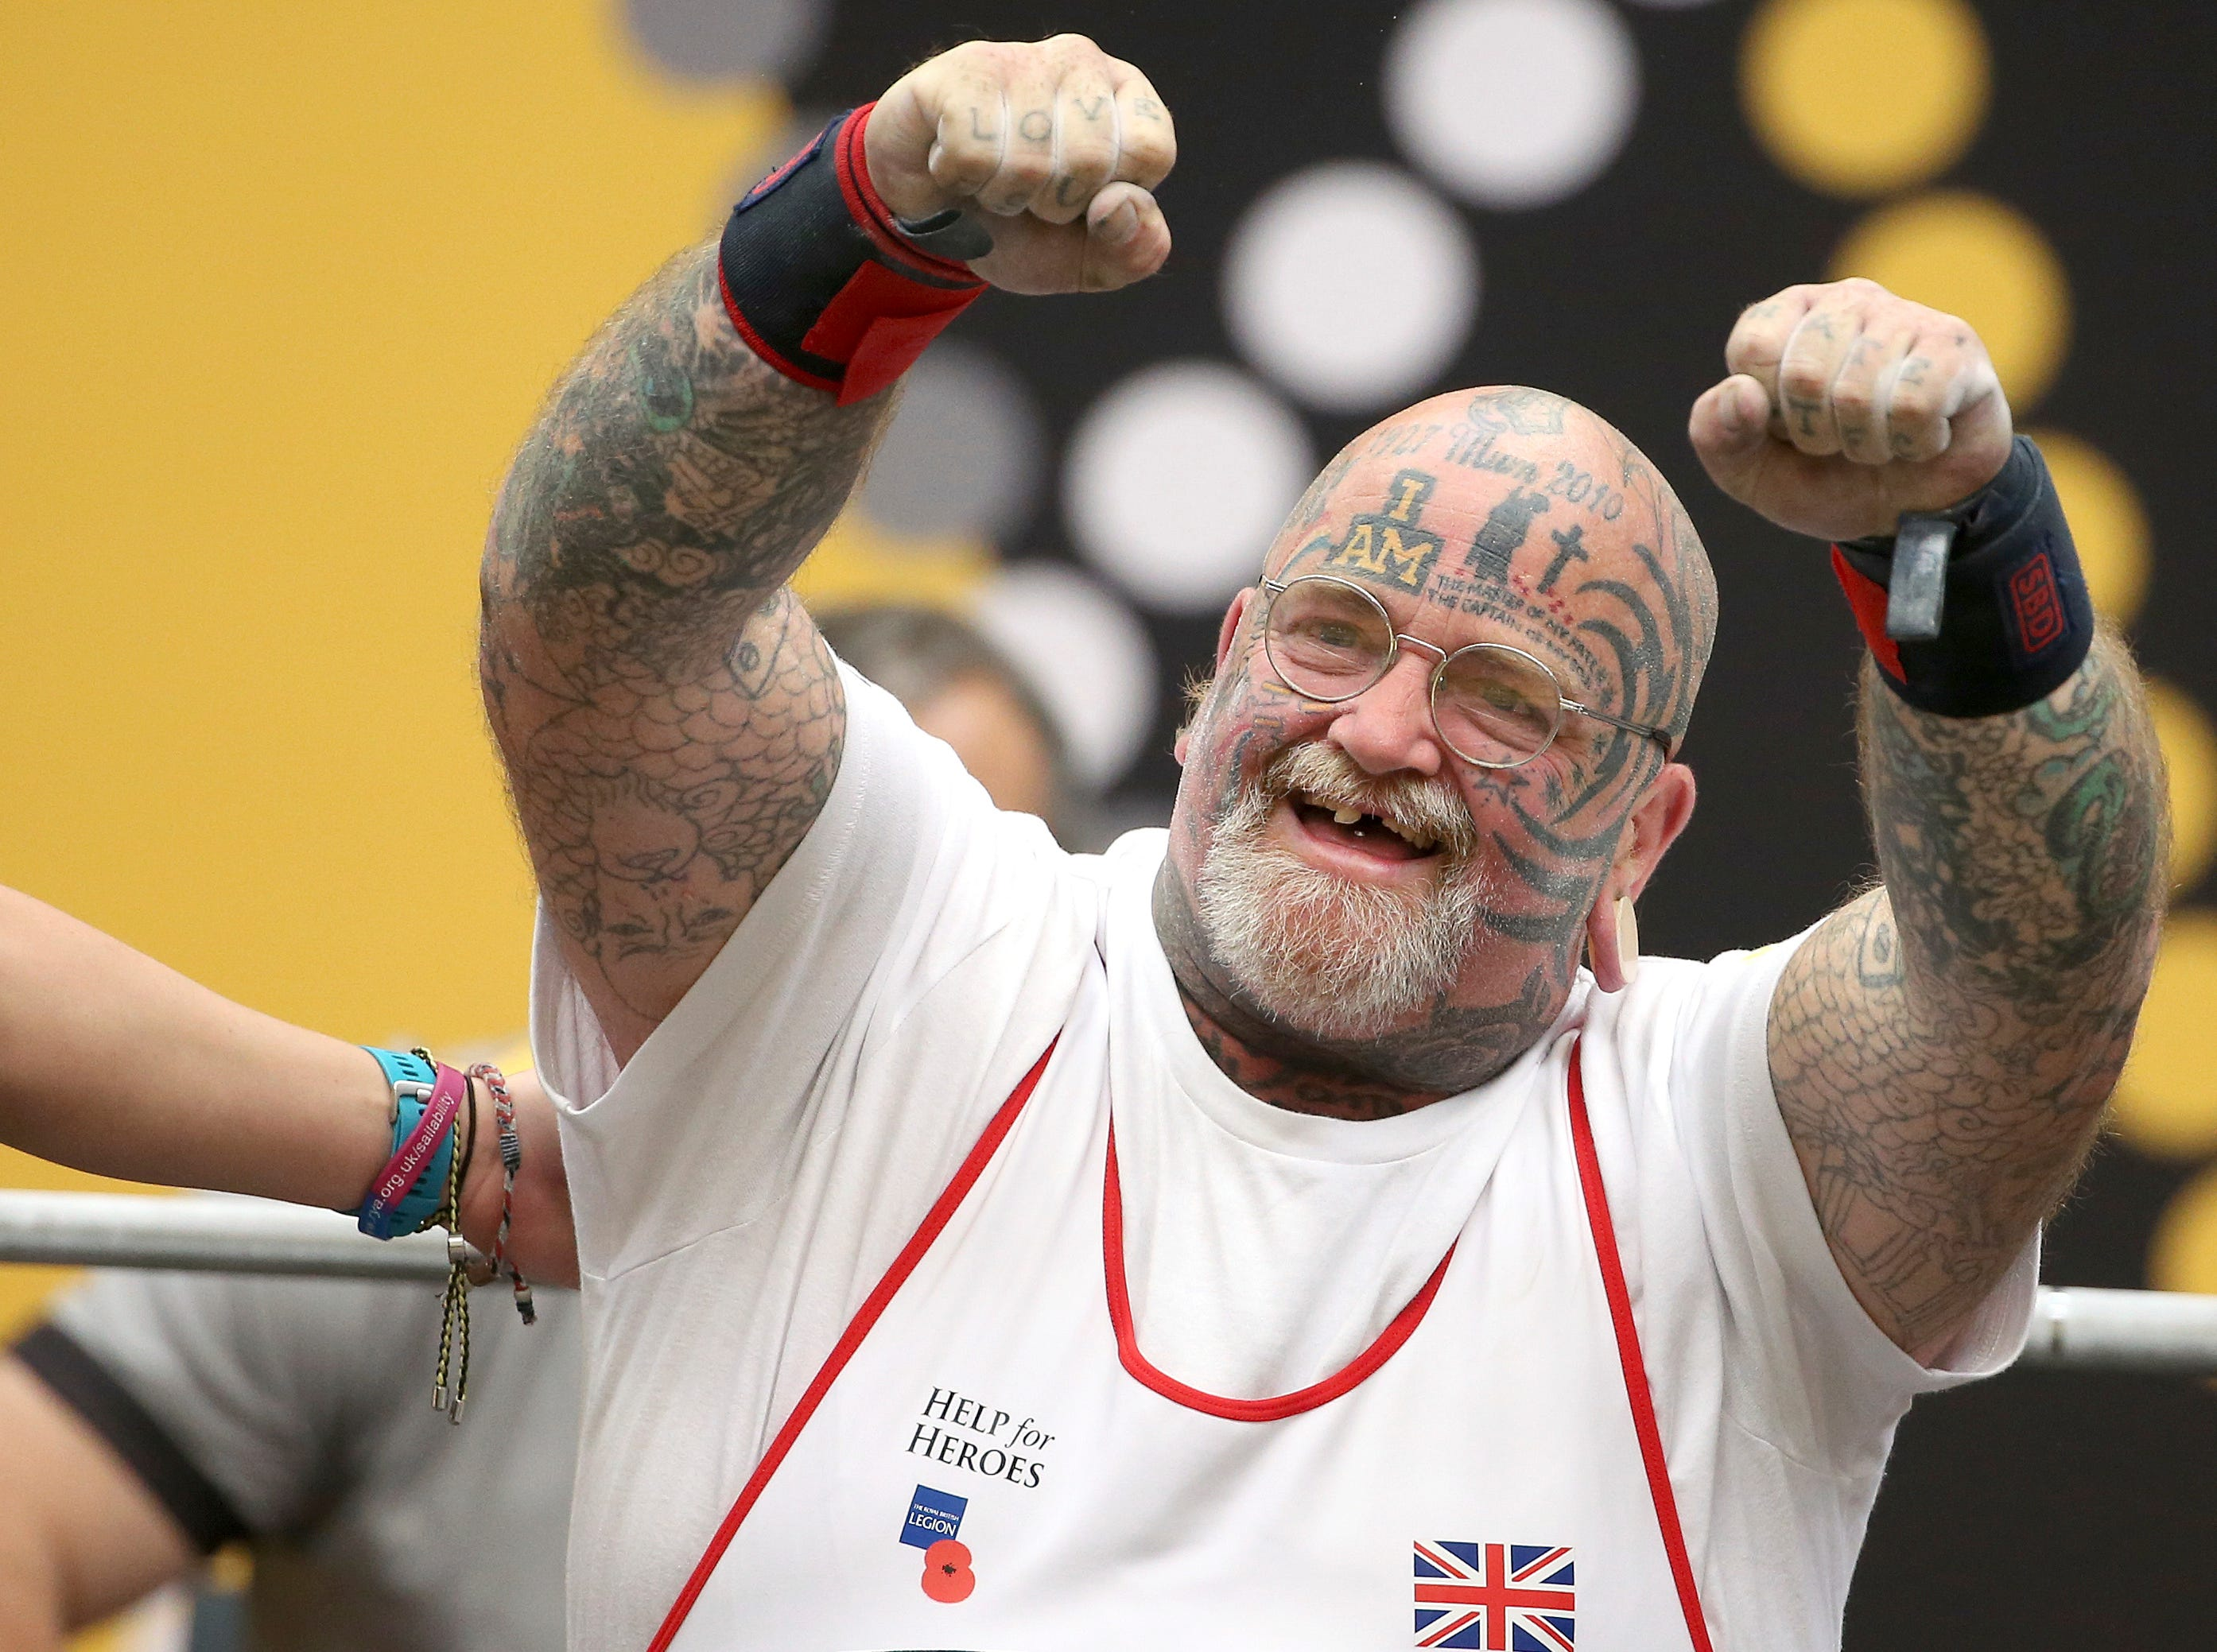 Britain's Paul Guest celebrates after a successful lift during the powerlifting competition at the Invictus Games in Sydney, Wednesday, Oct. 24, 2018.